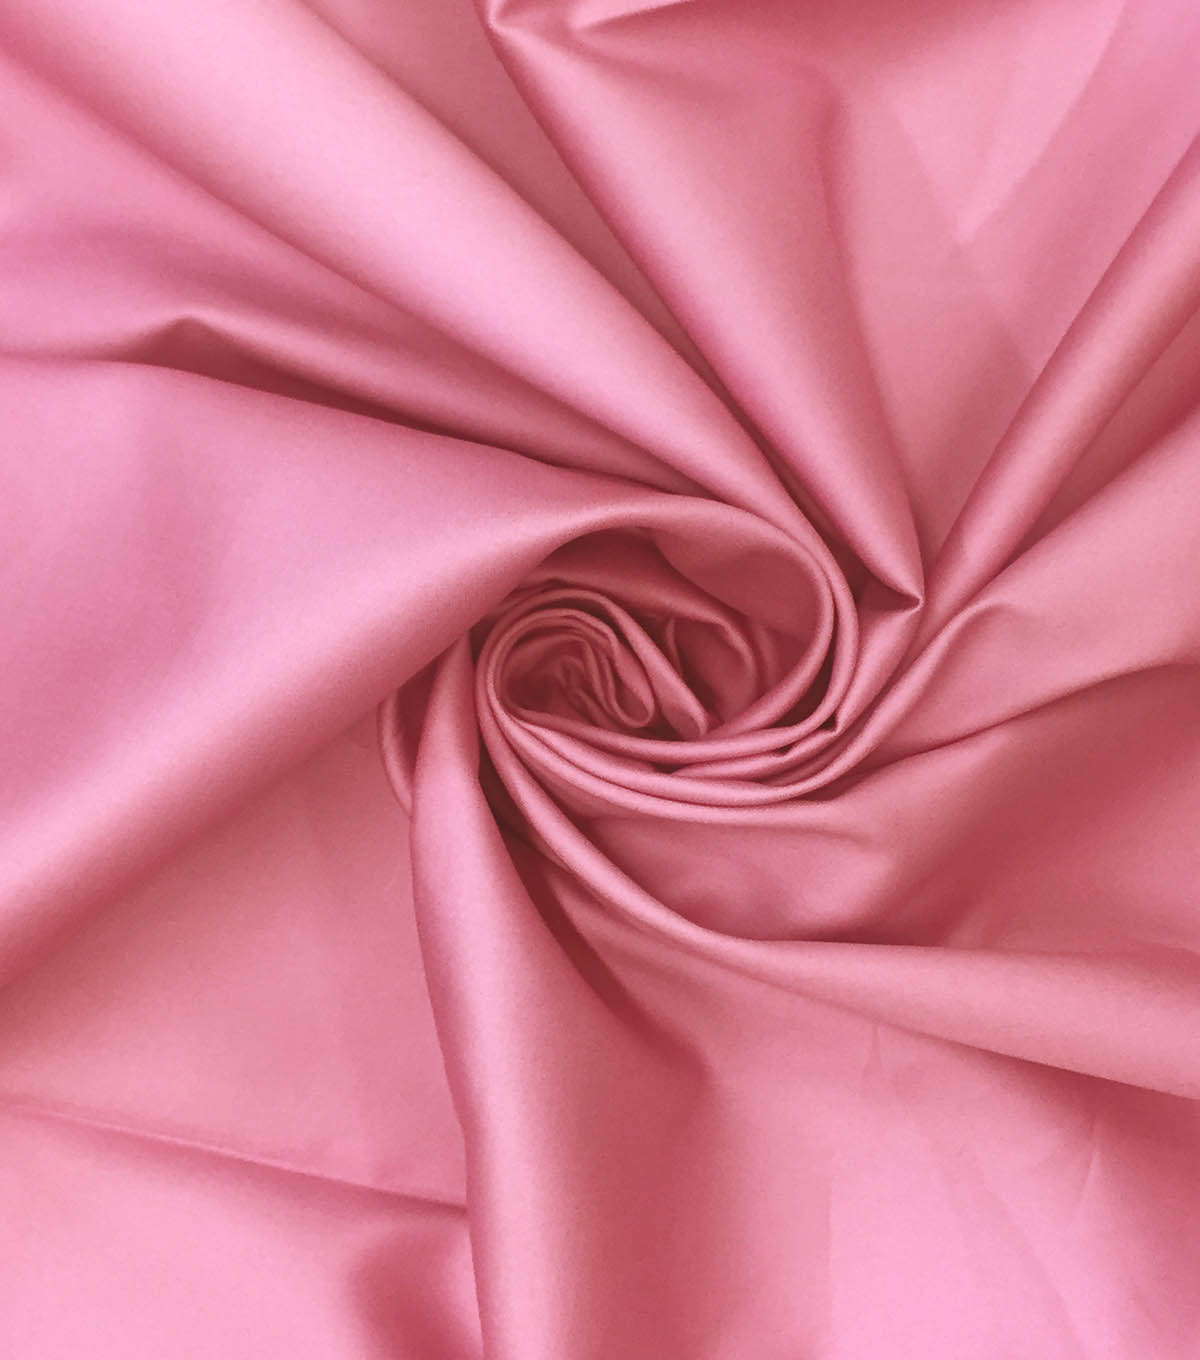 Supima Sateen Cotton Fabric-Solids, Ballet Pink